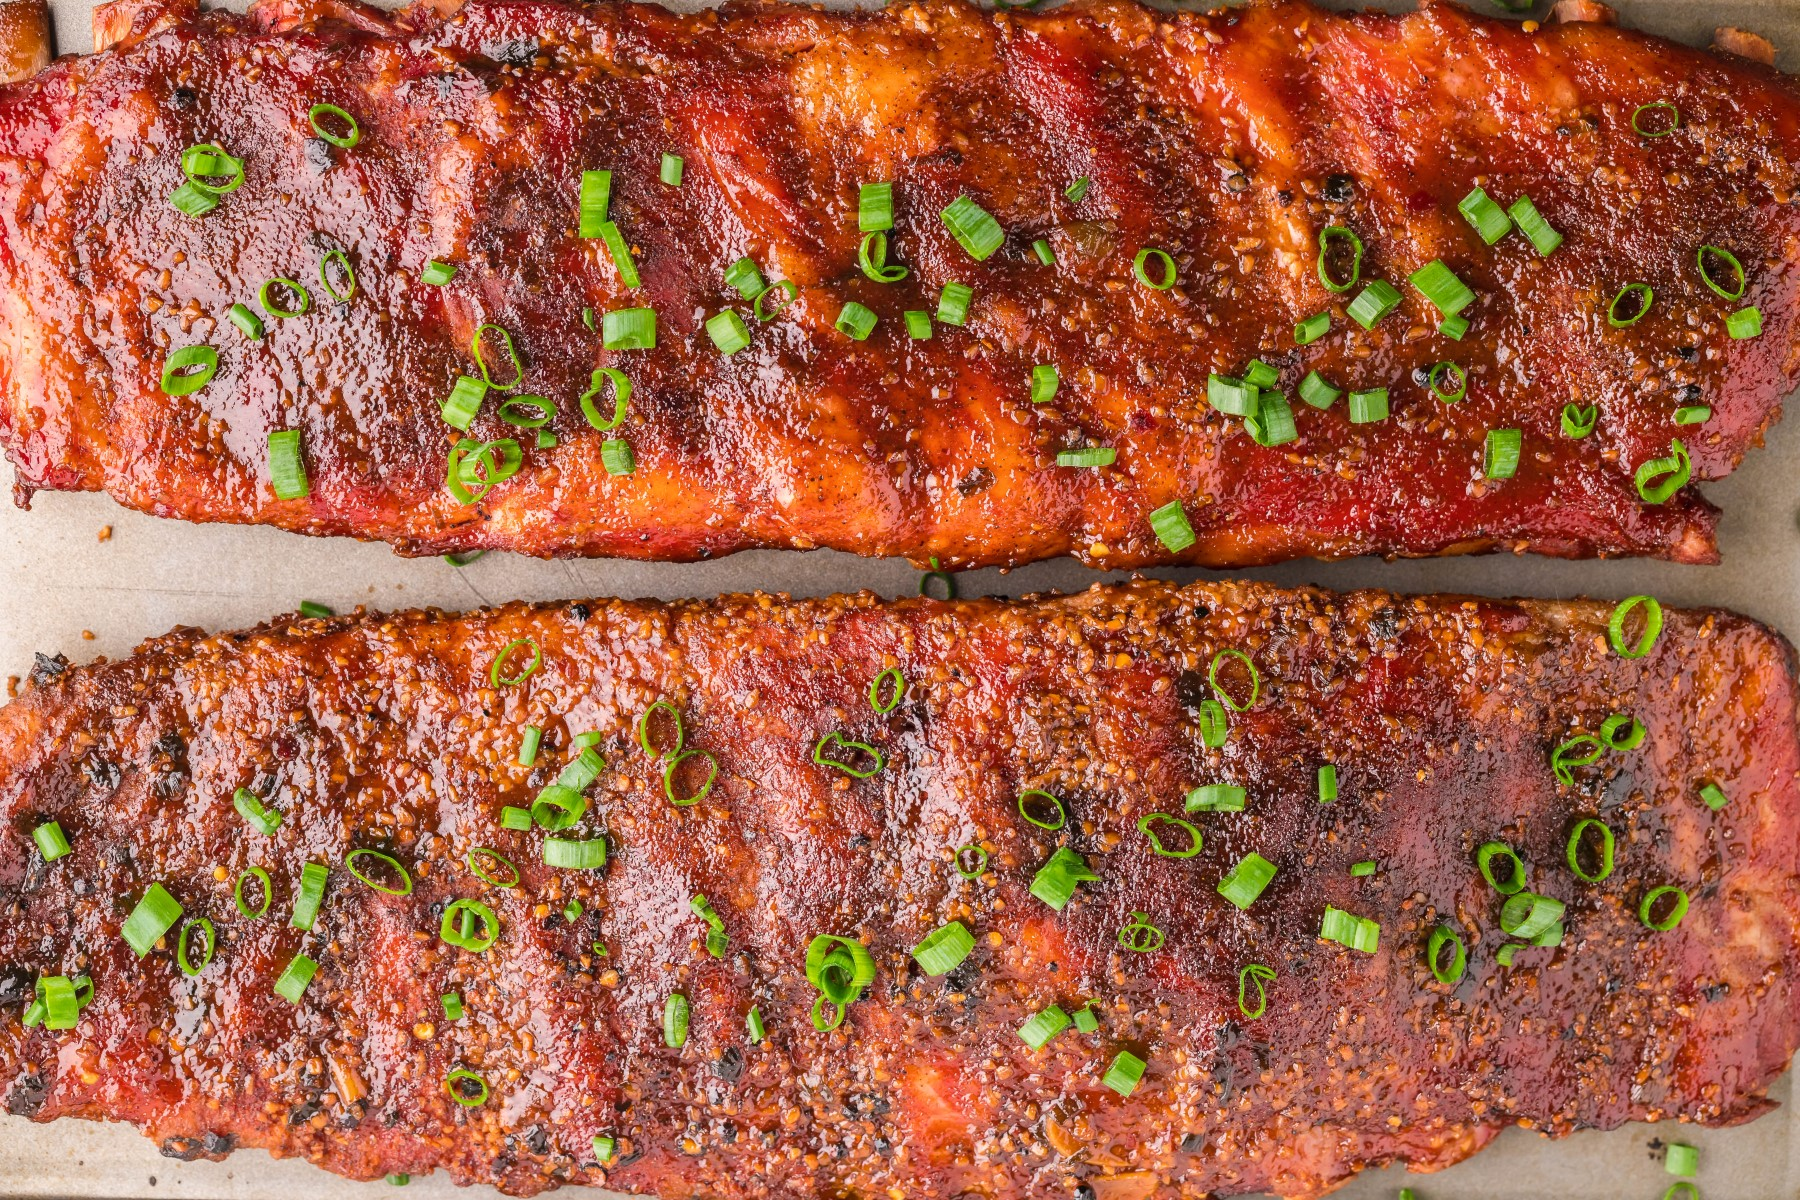 2 smoked racks of ribs garnished with chopped green onion on a parchment lined tray.